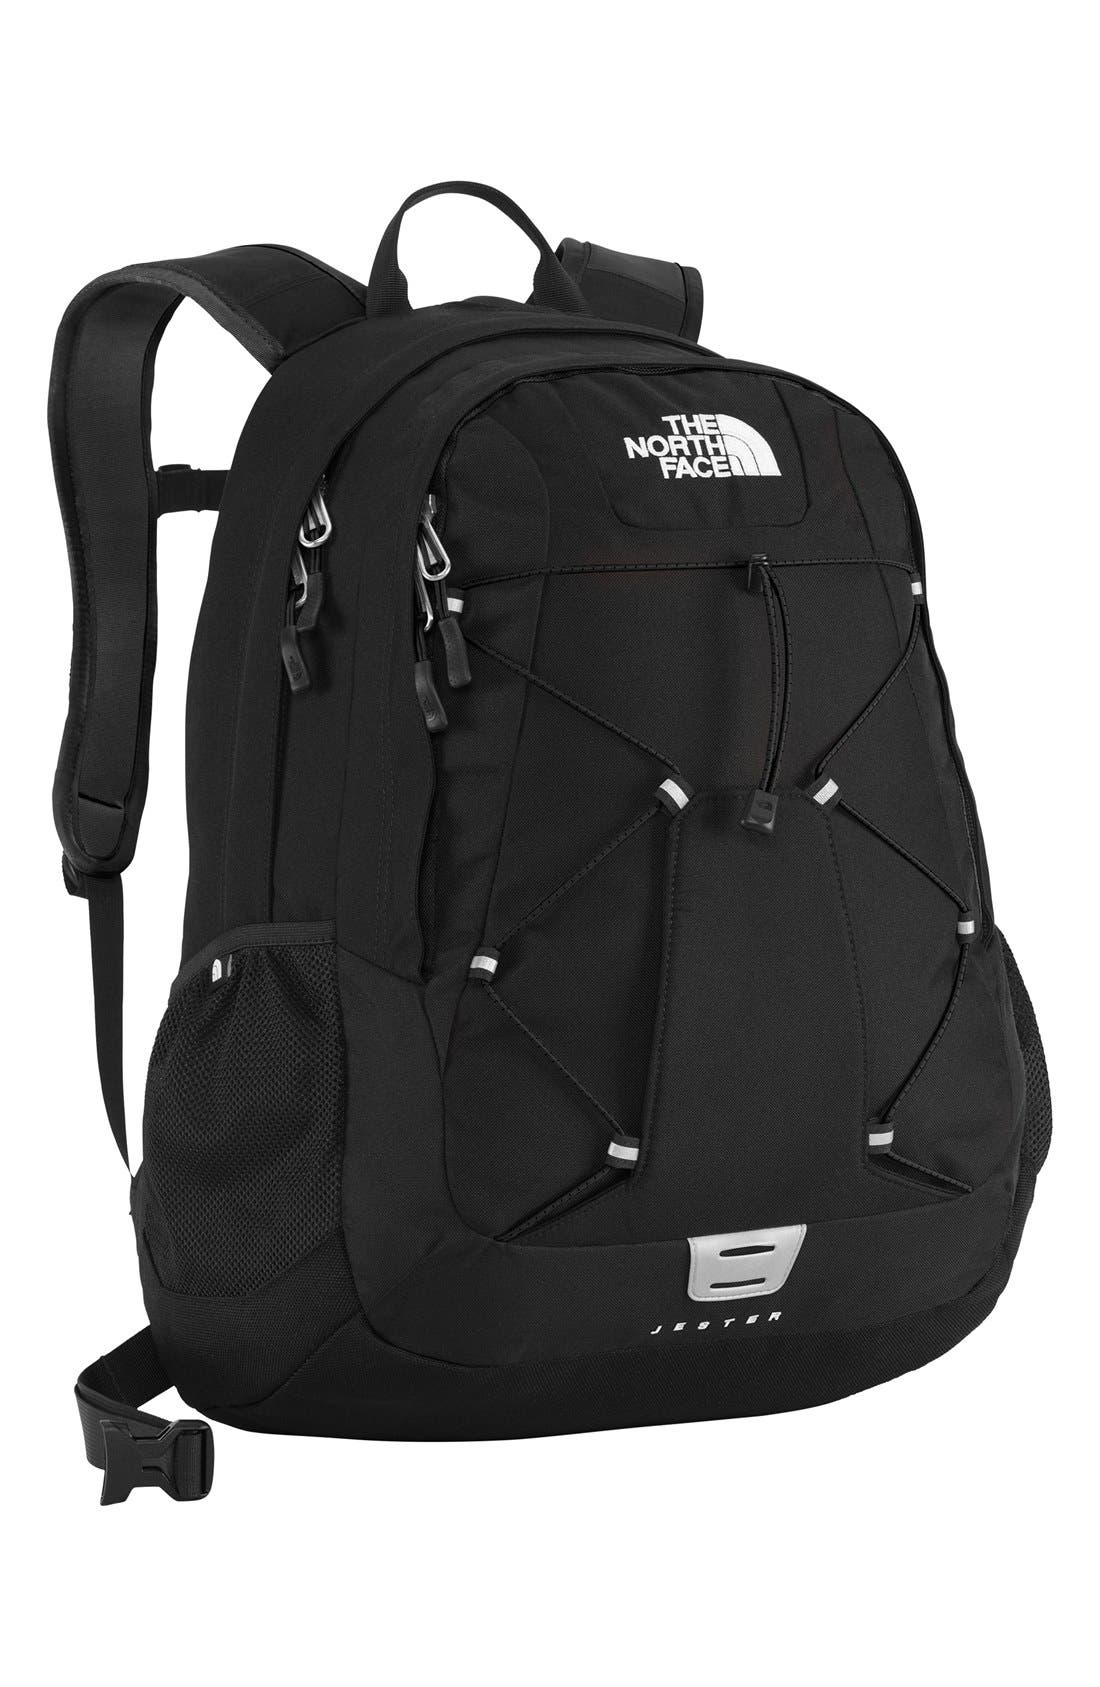 Alternate Image 1 Selected - The North Face 'Jester' Backpack